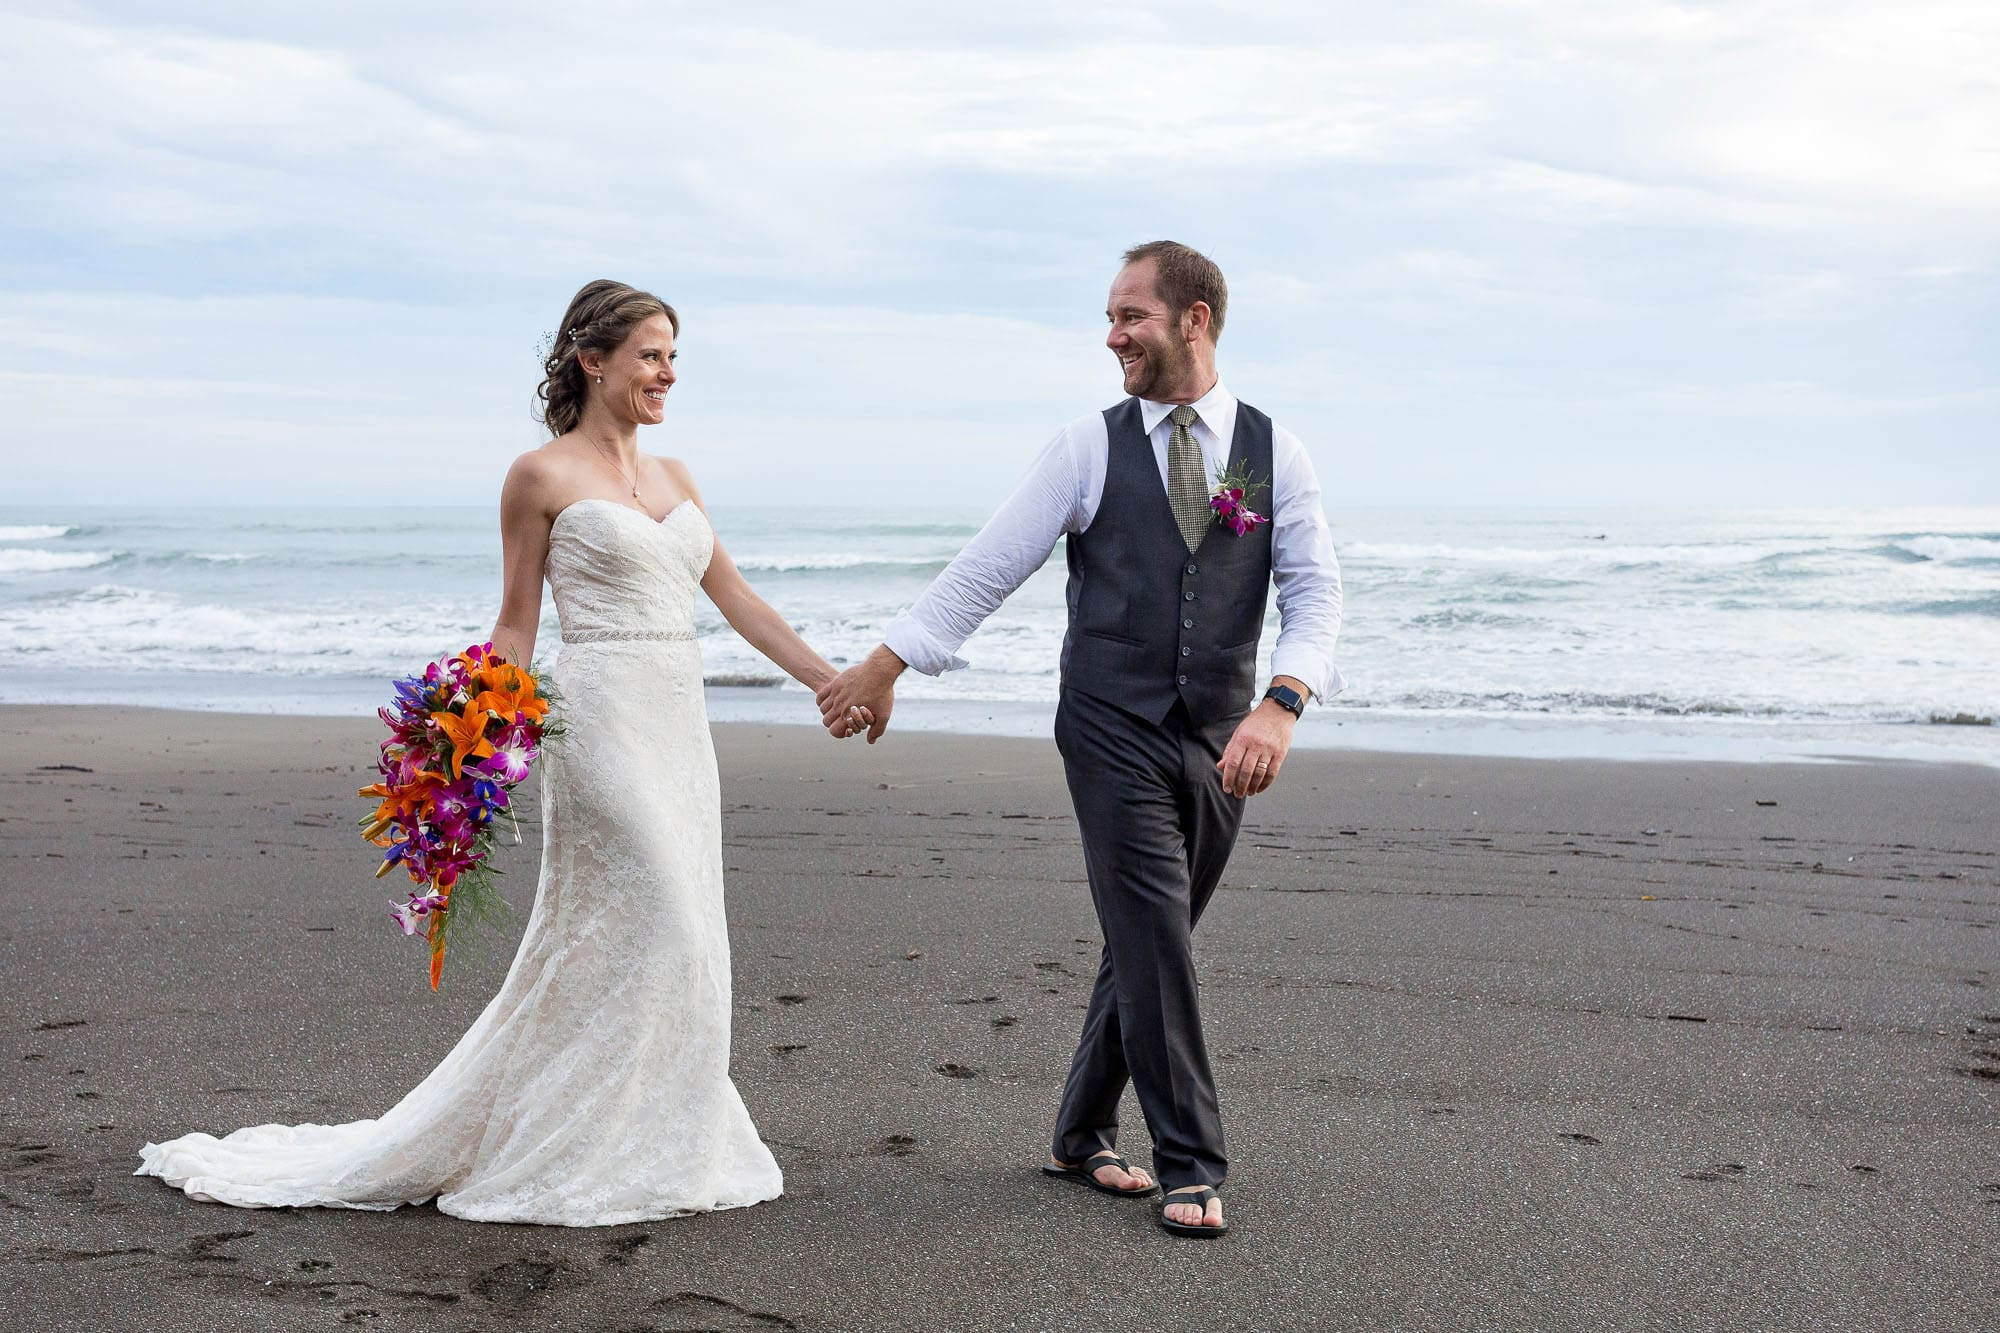 Bride and groom walking on the beach holding hands